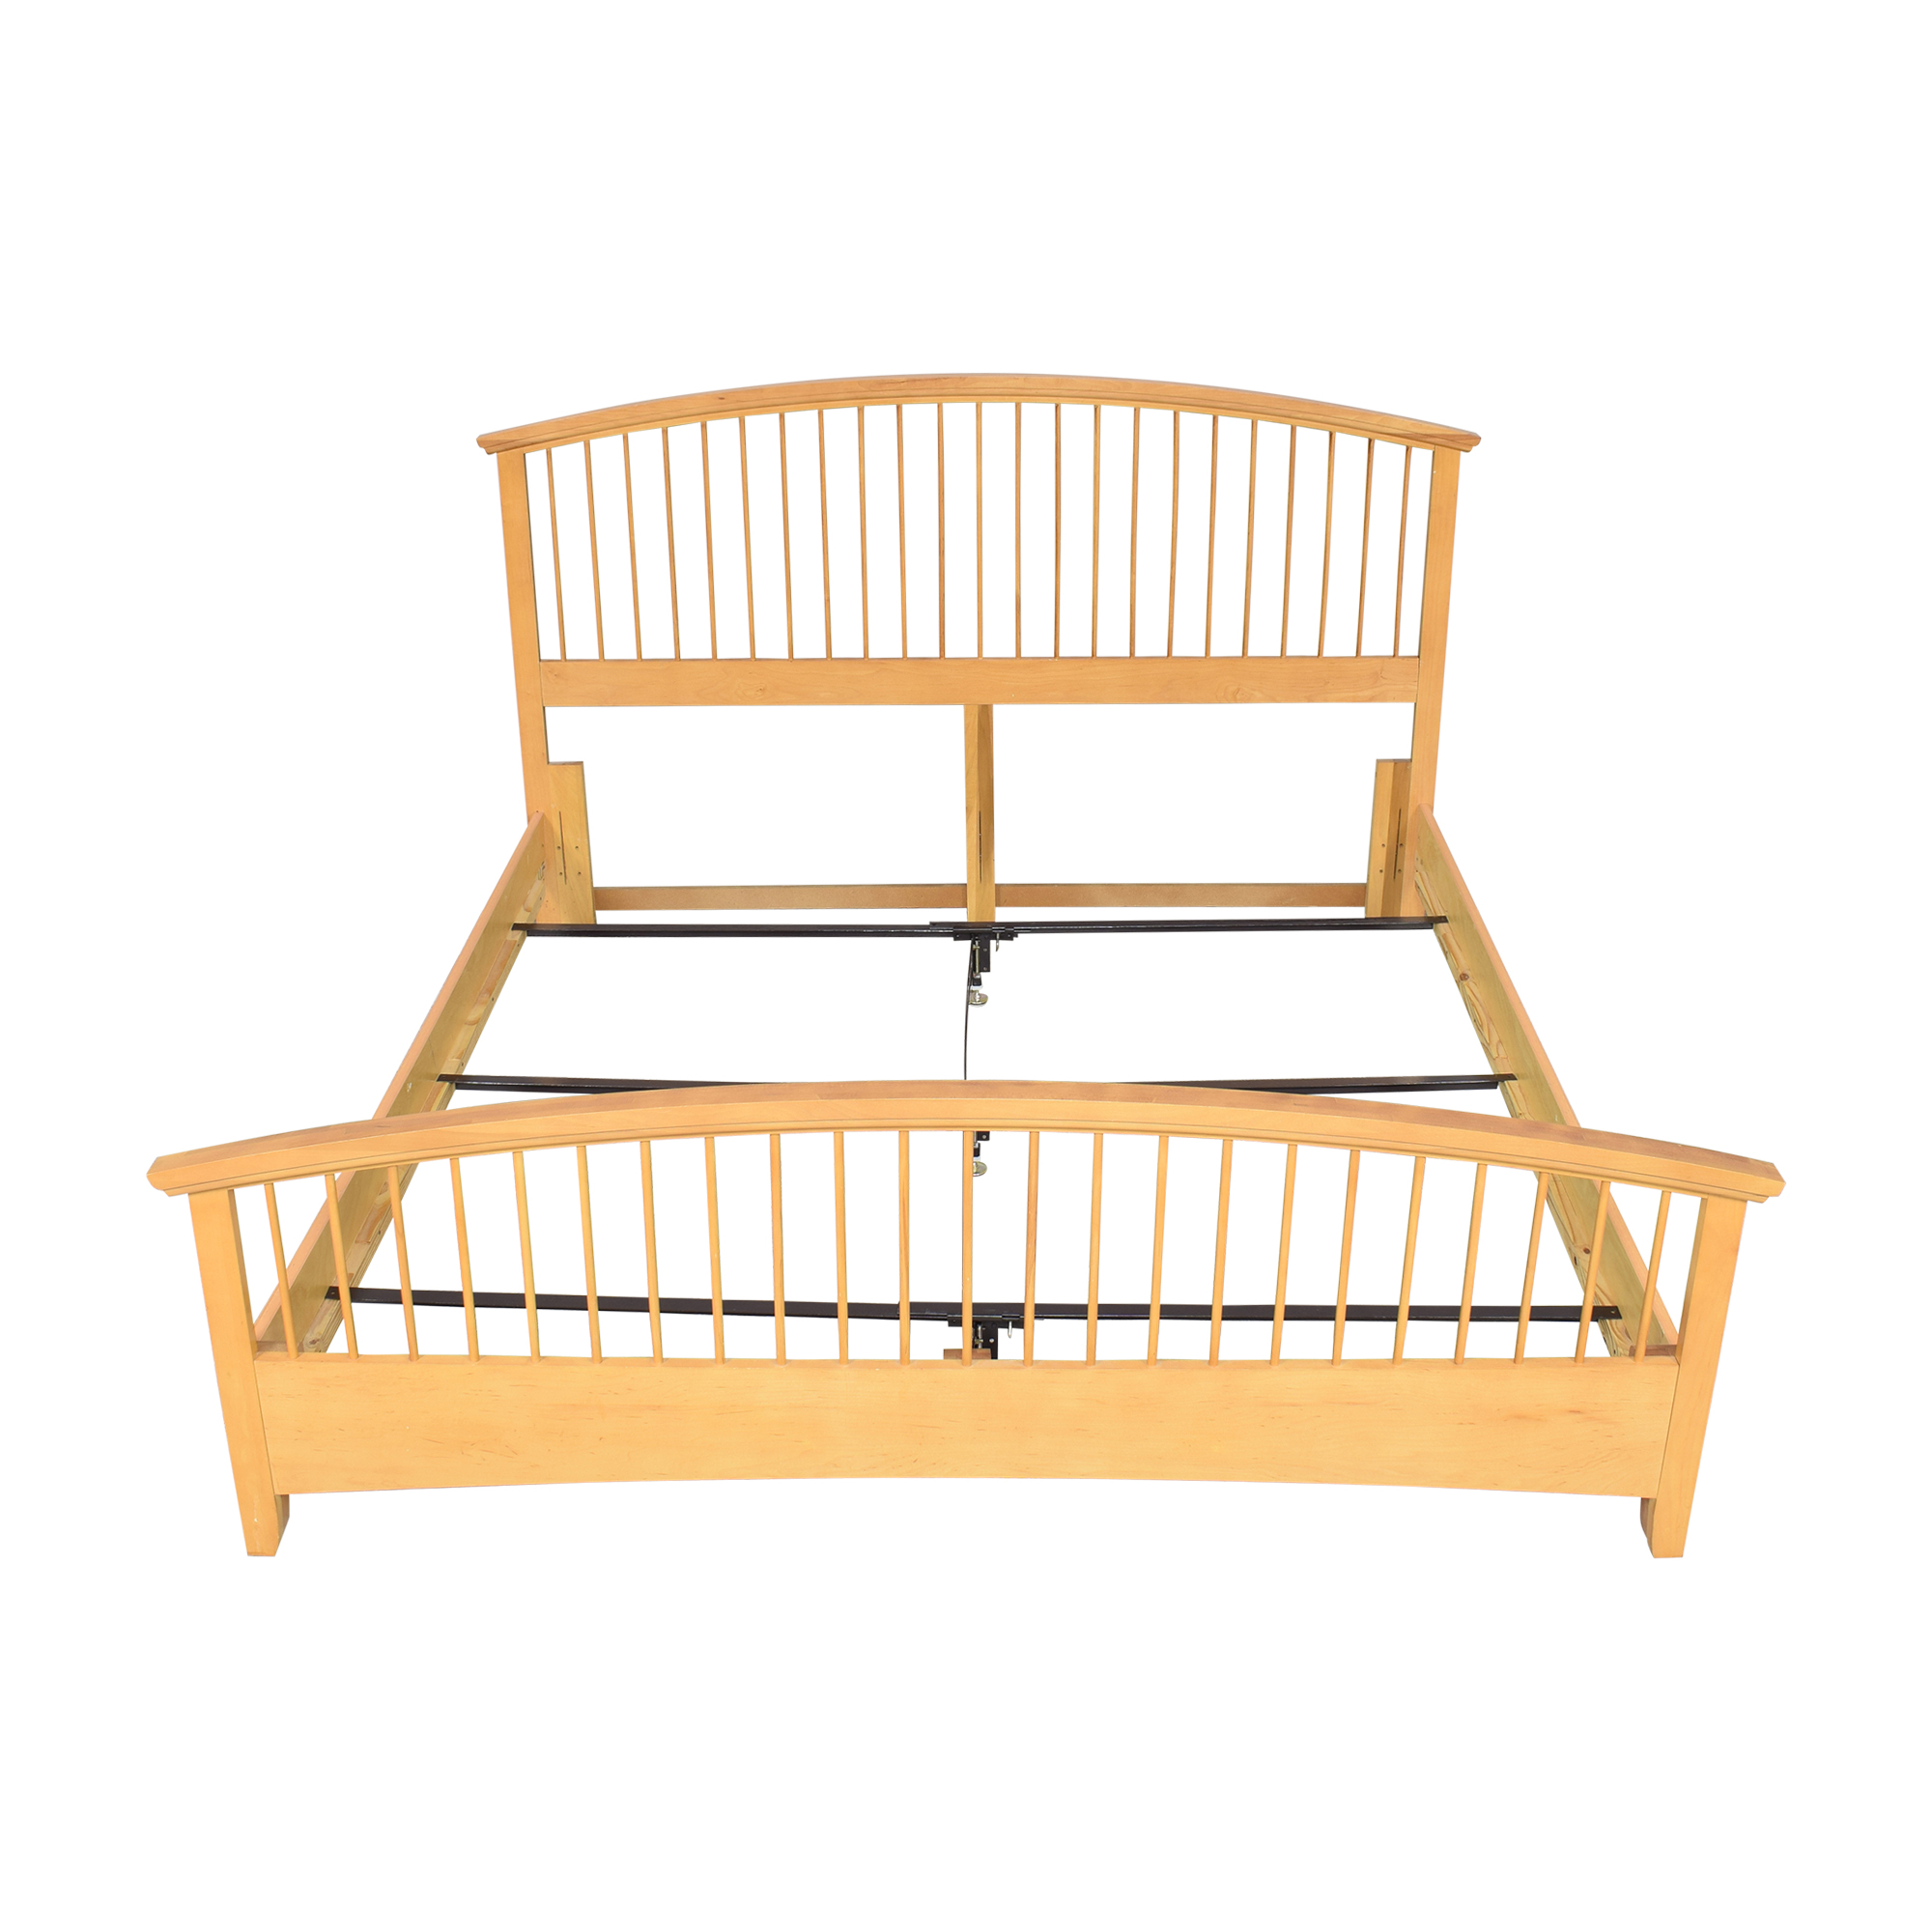 Vaughan-Bassett Vaughan-Bassett Arched Spindle King Bed dimensions